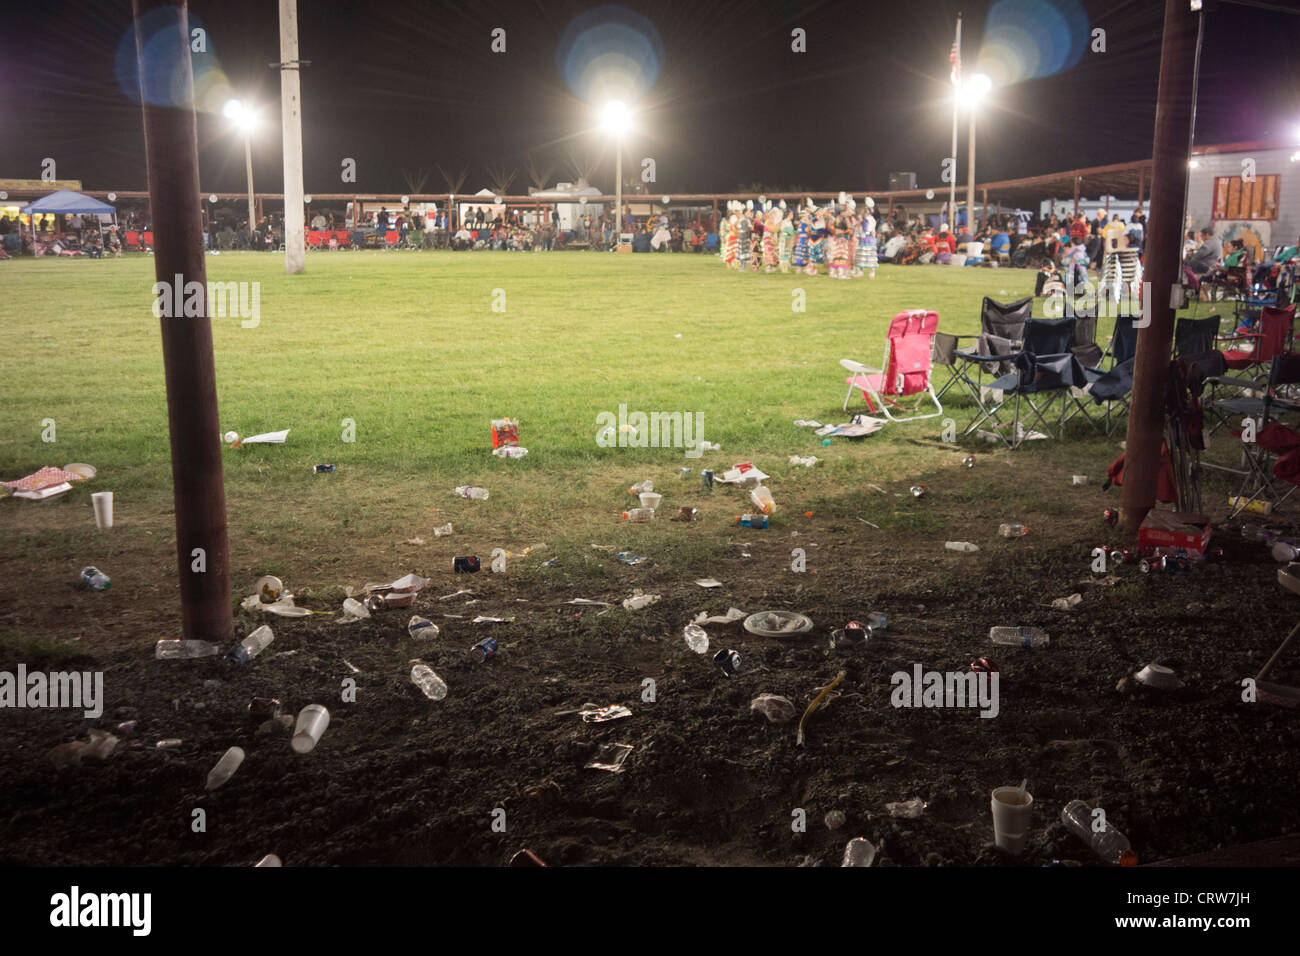 Trash left on the field after a powwow held at Fort Washakie, Wyoming - Stock Image